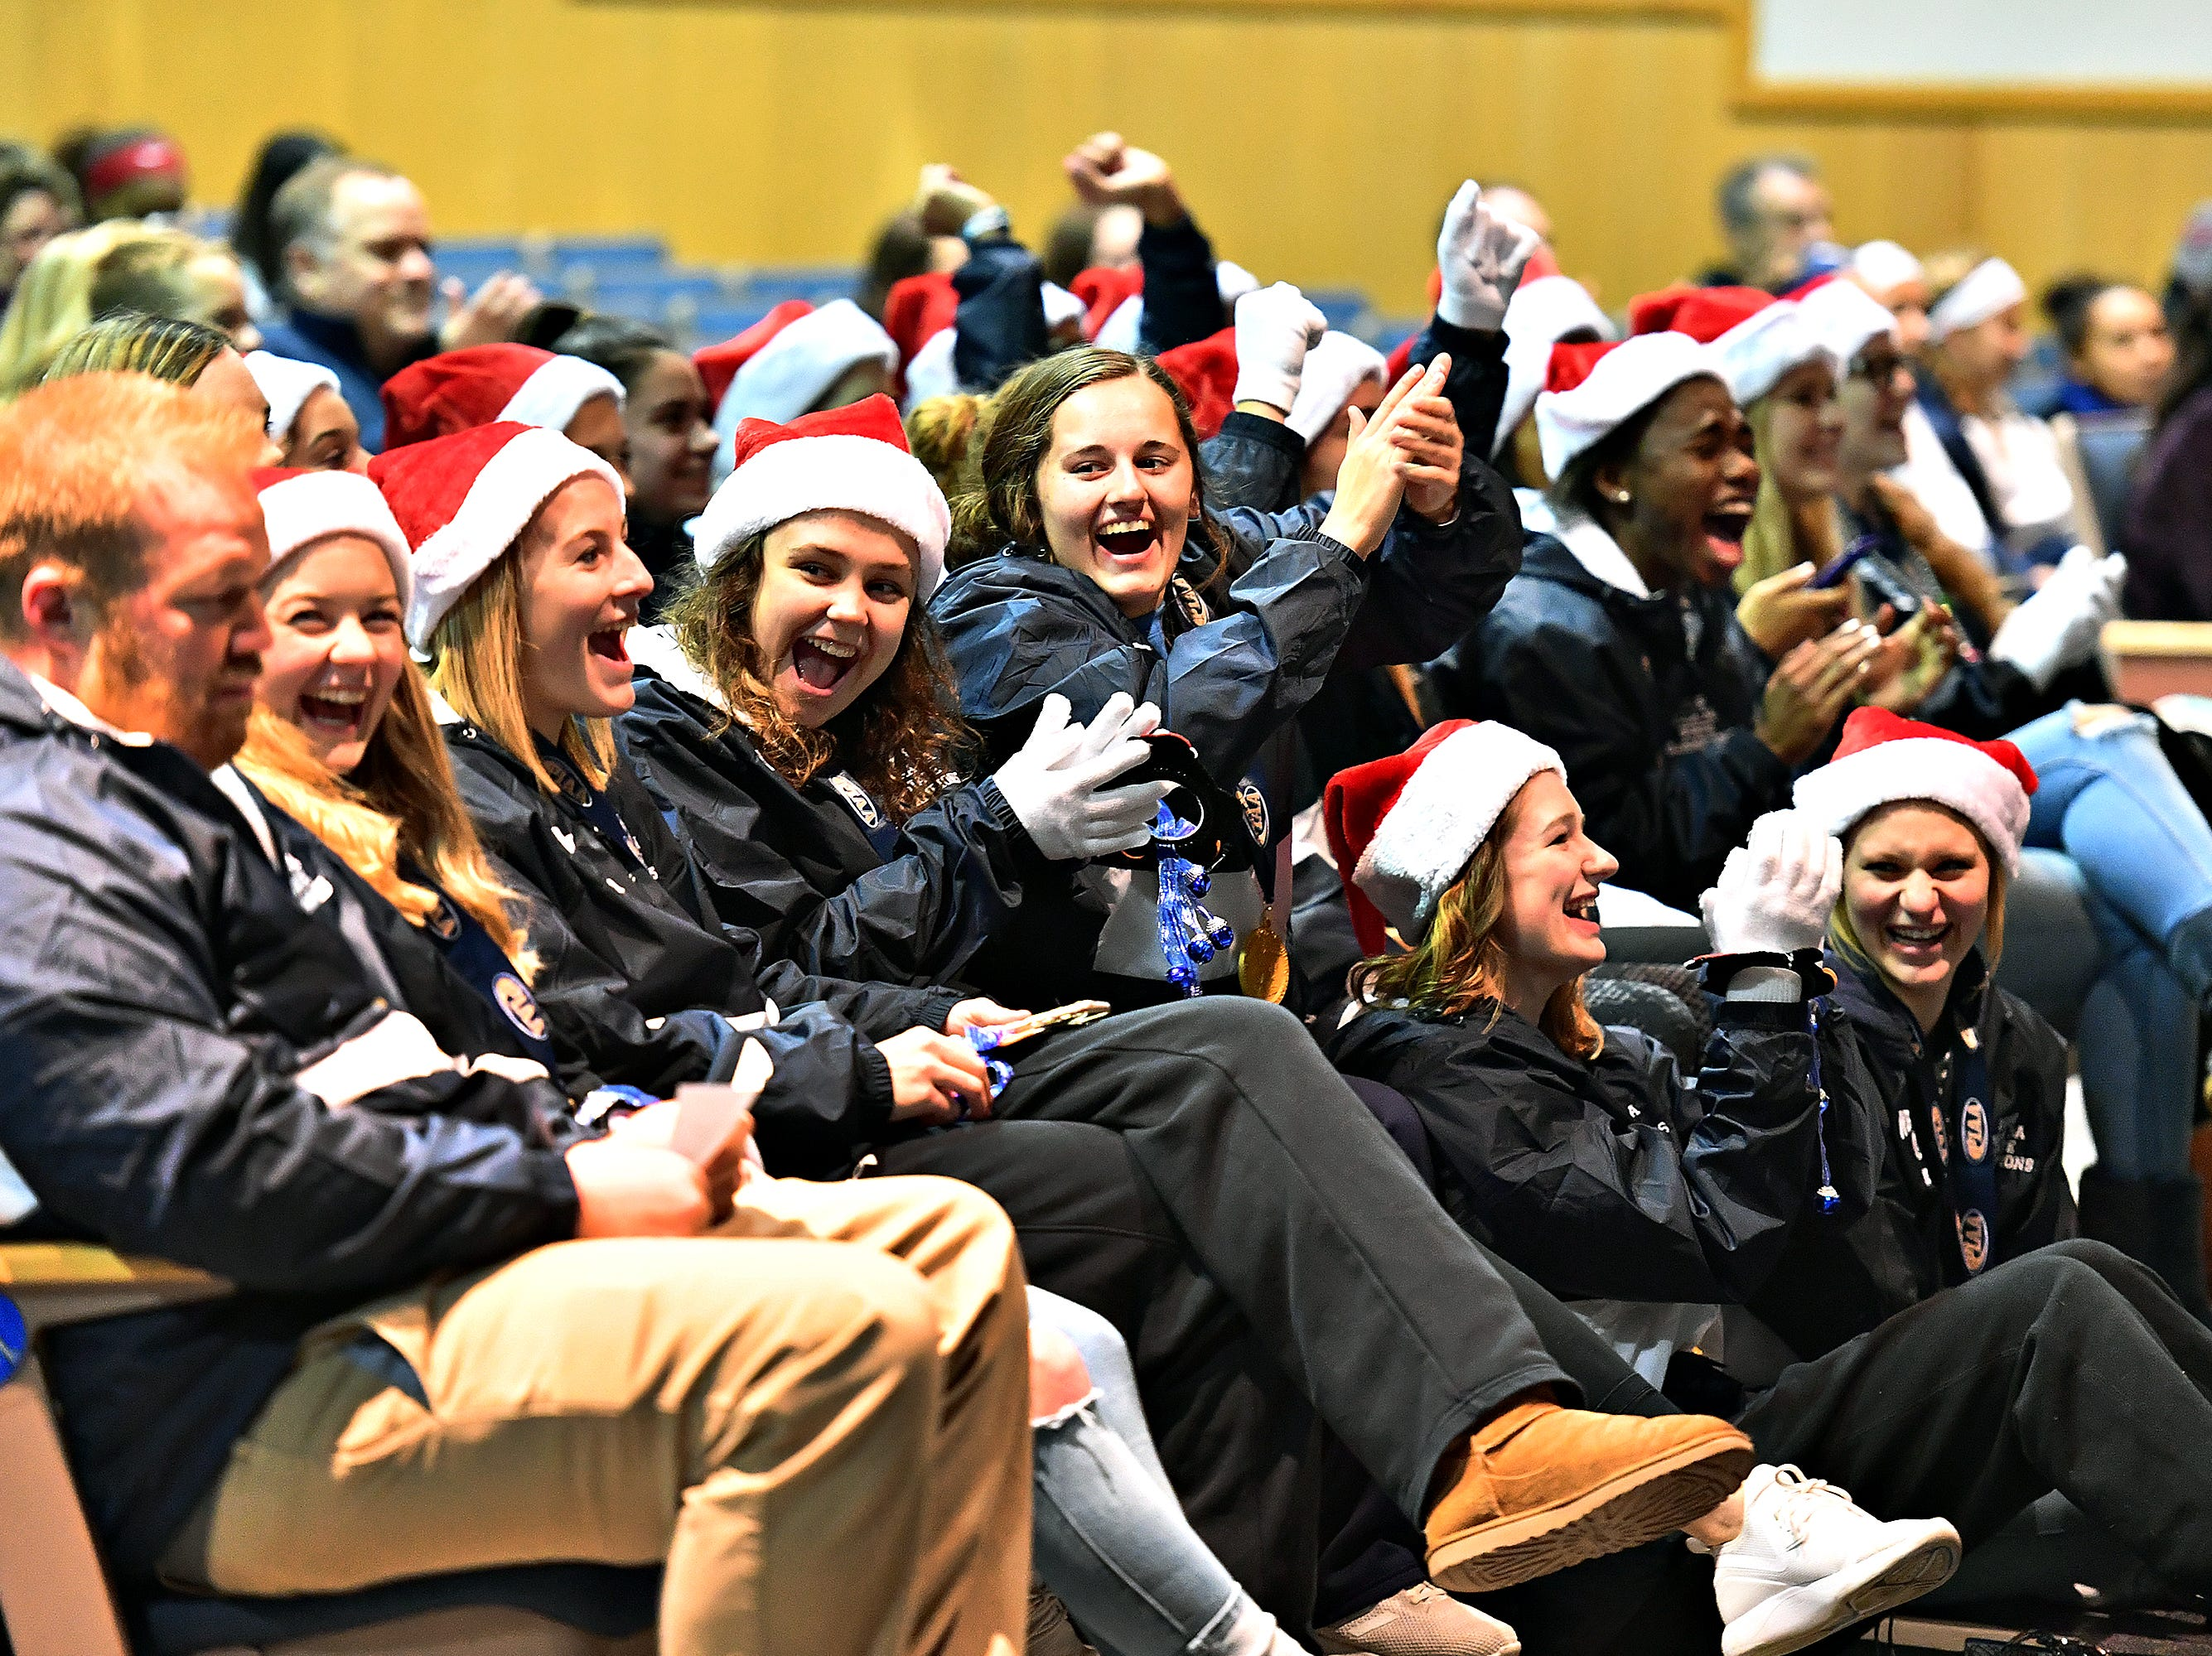 The 2018 PIAA 3-A State Champion Lady Bulldogs Volleyball team react to a video made for them as they are honored following a parade at West York Area High School in West Manchester Township, Friday, Nov. 30, 2018. Dawn J. Sagert photo